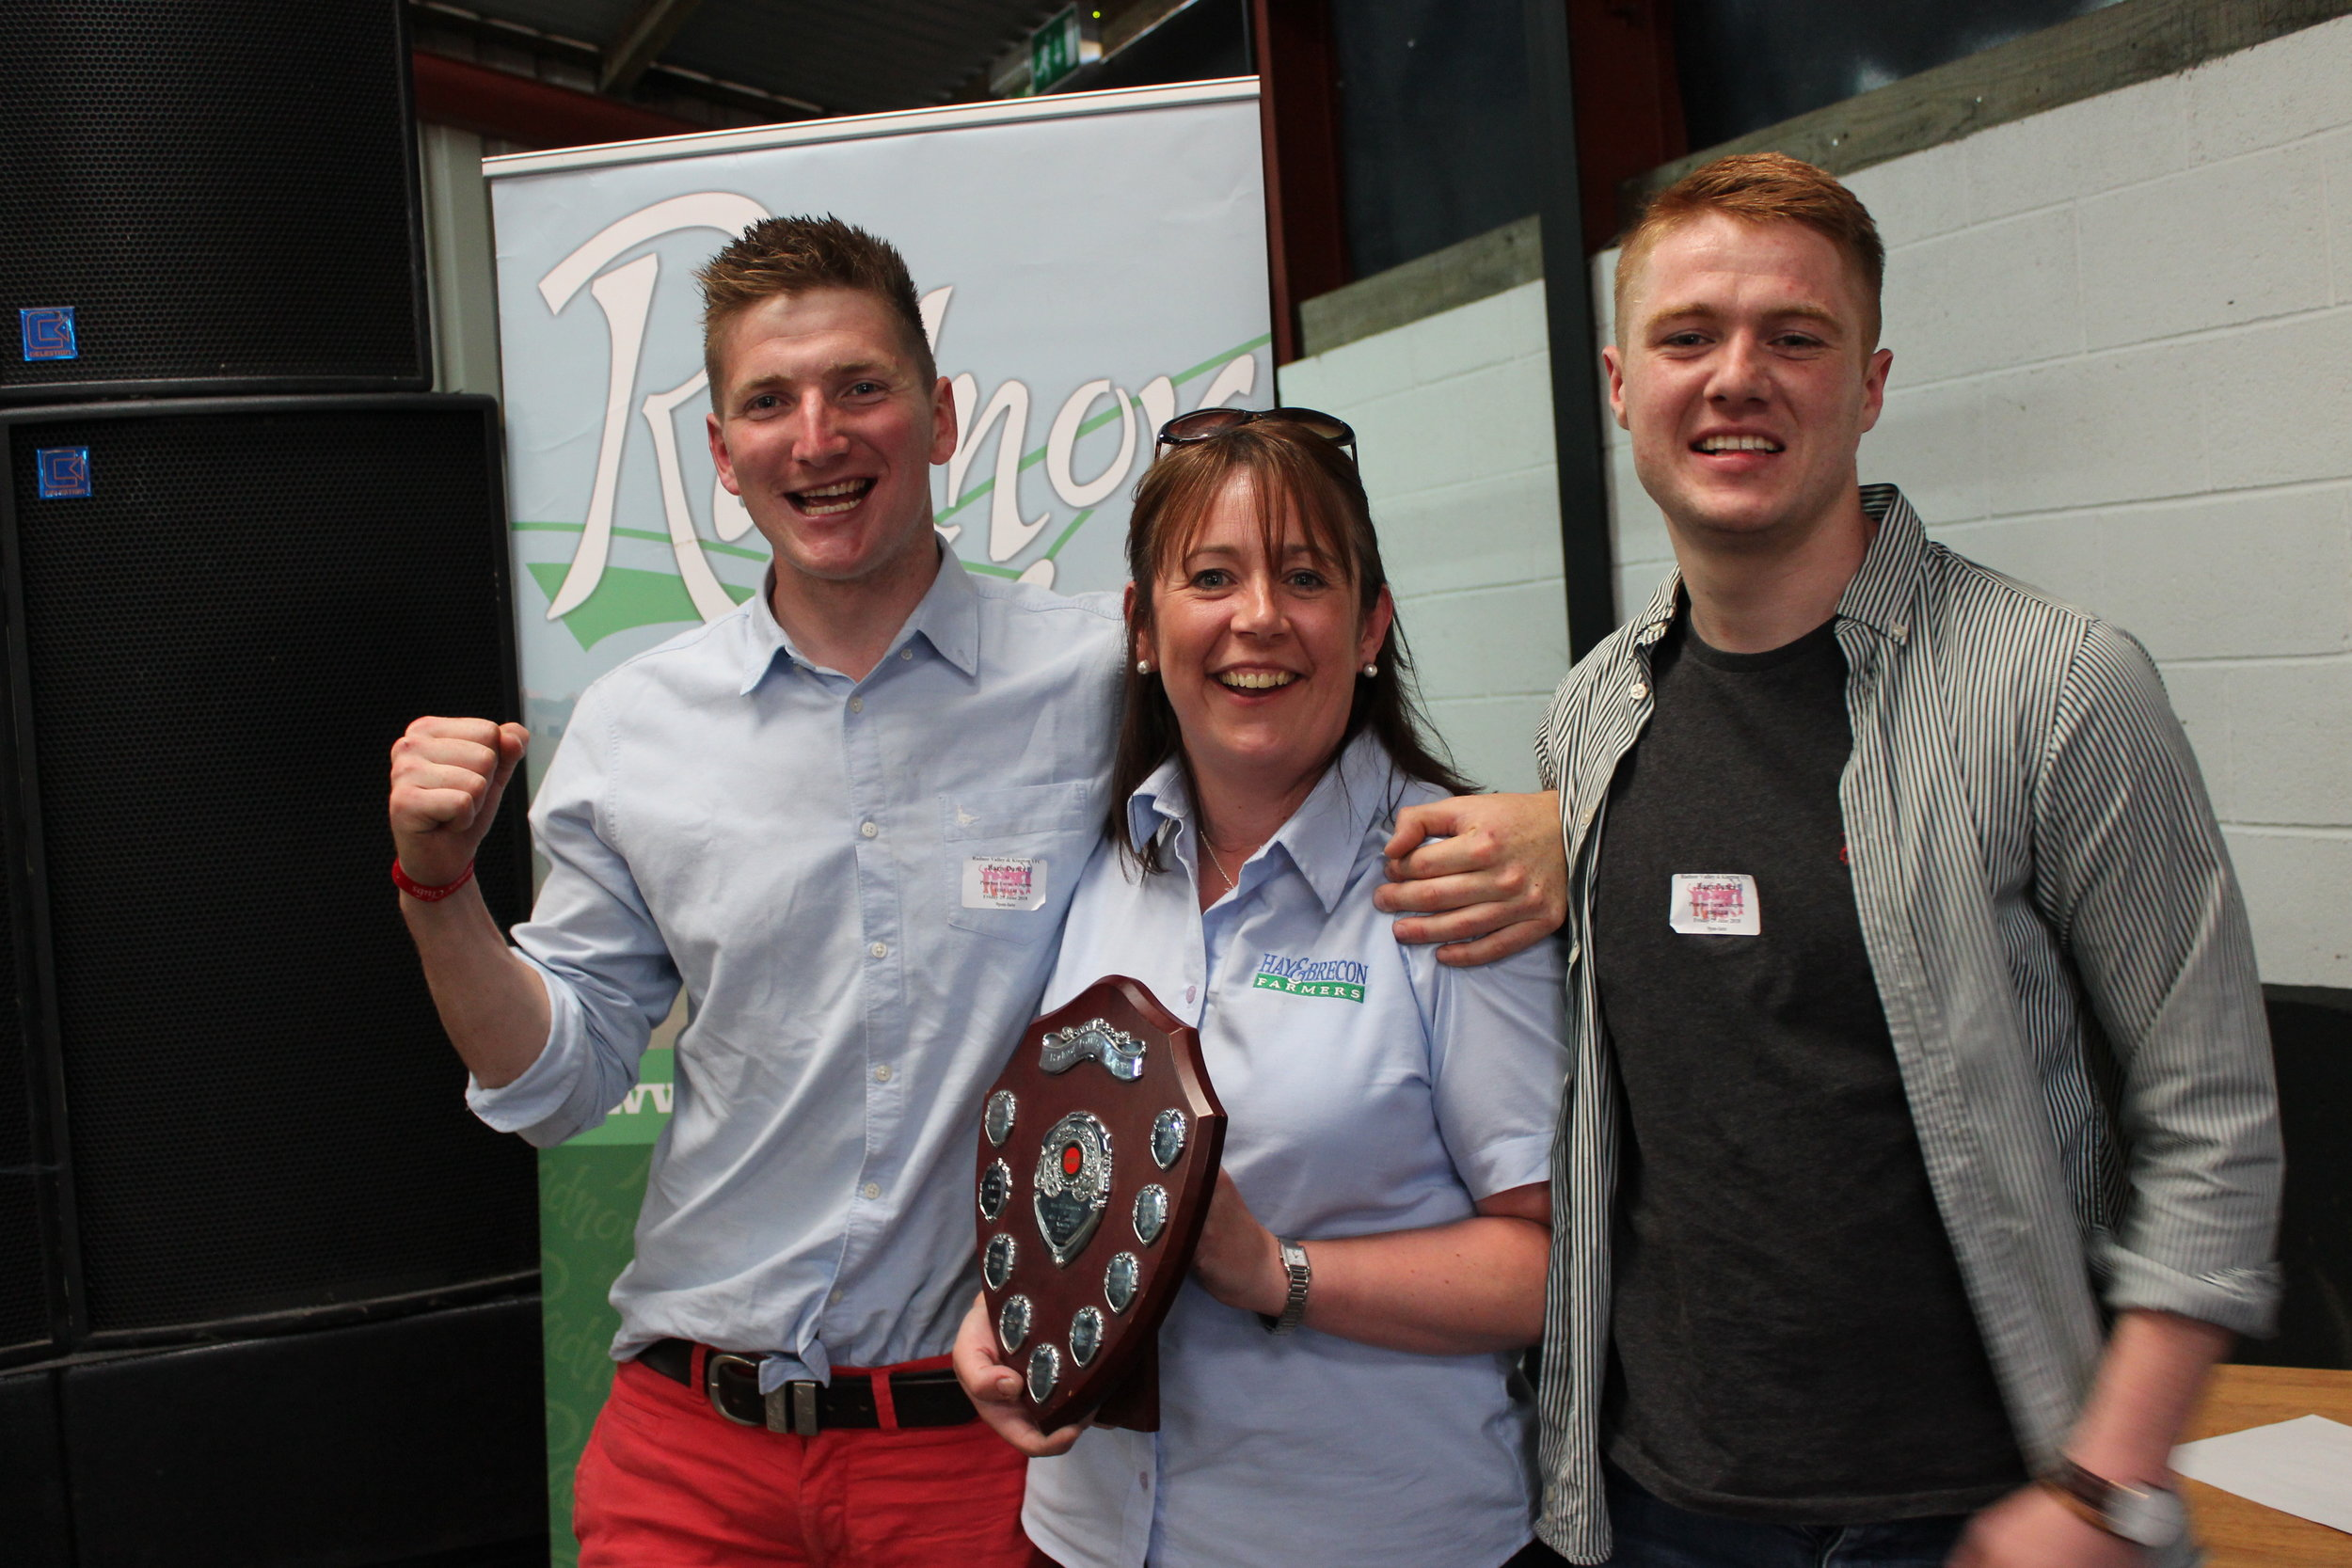 Robbie Savage & Ieuan Price, Radnor Valley YFC - Mrs B I Rodericl and Mrs A Lawrence Novelty Shield / RAF Wheelbarrow Relay Competition